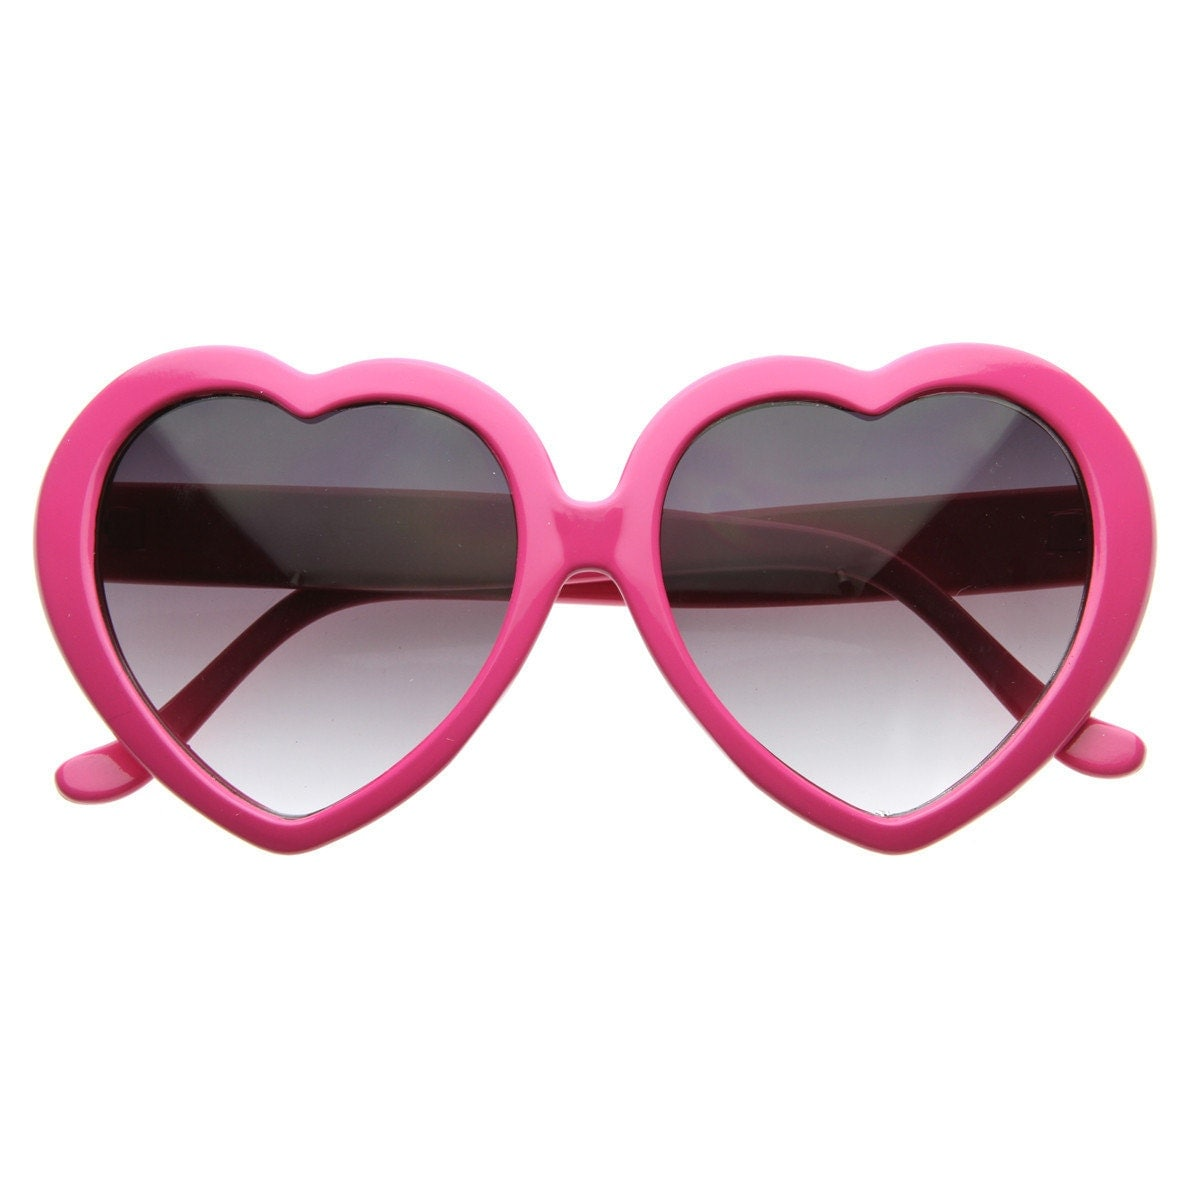 Vintage 60's Hot Pink Heart Shaped Sunglasses by houseofhades - photo#5